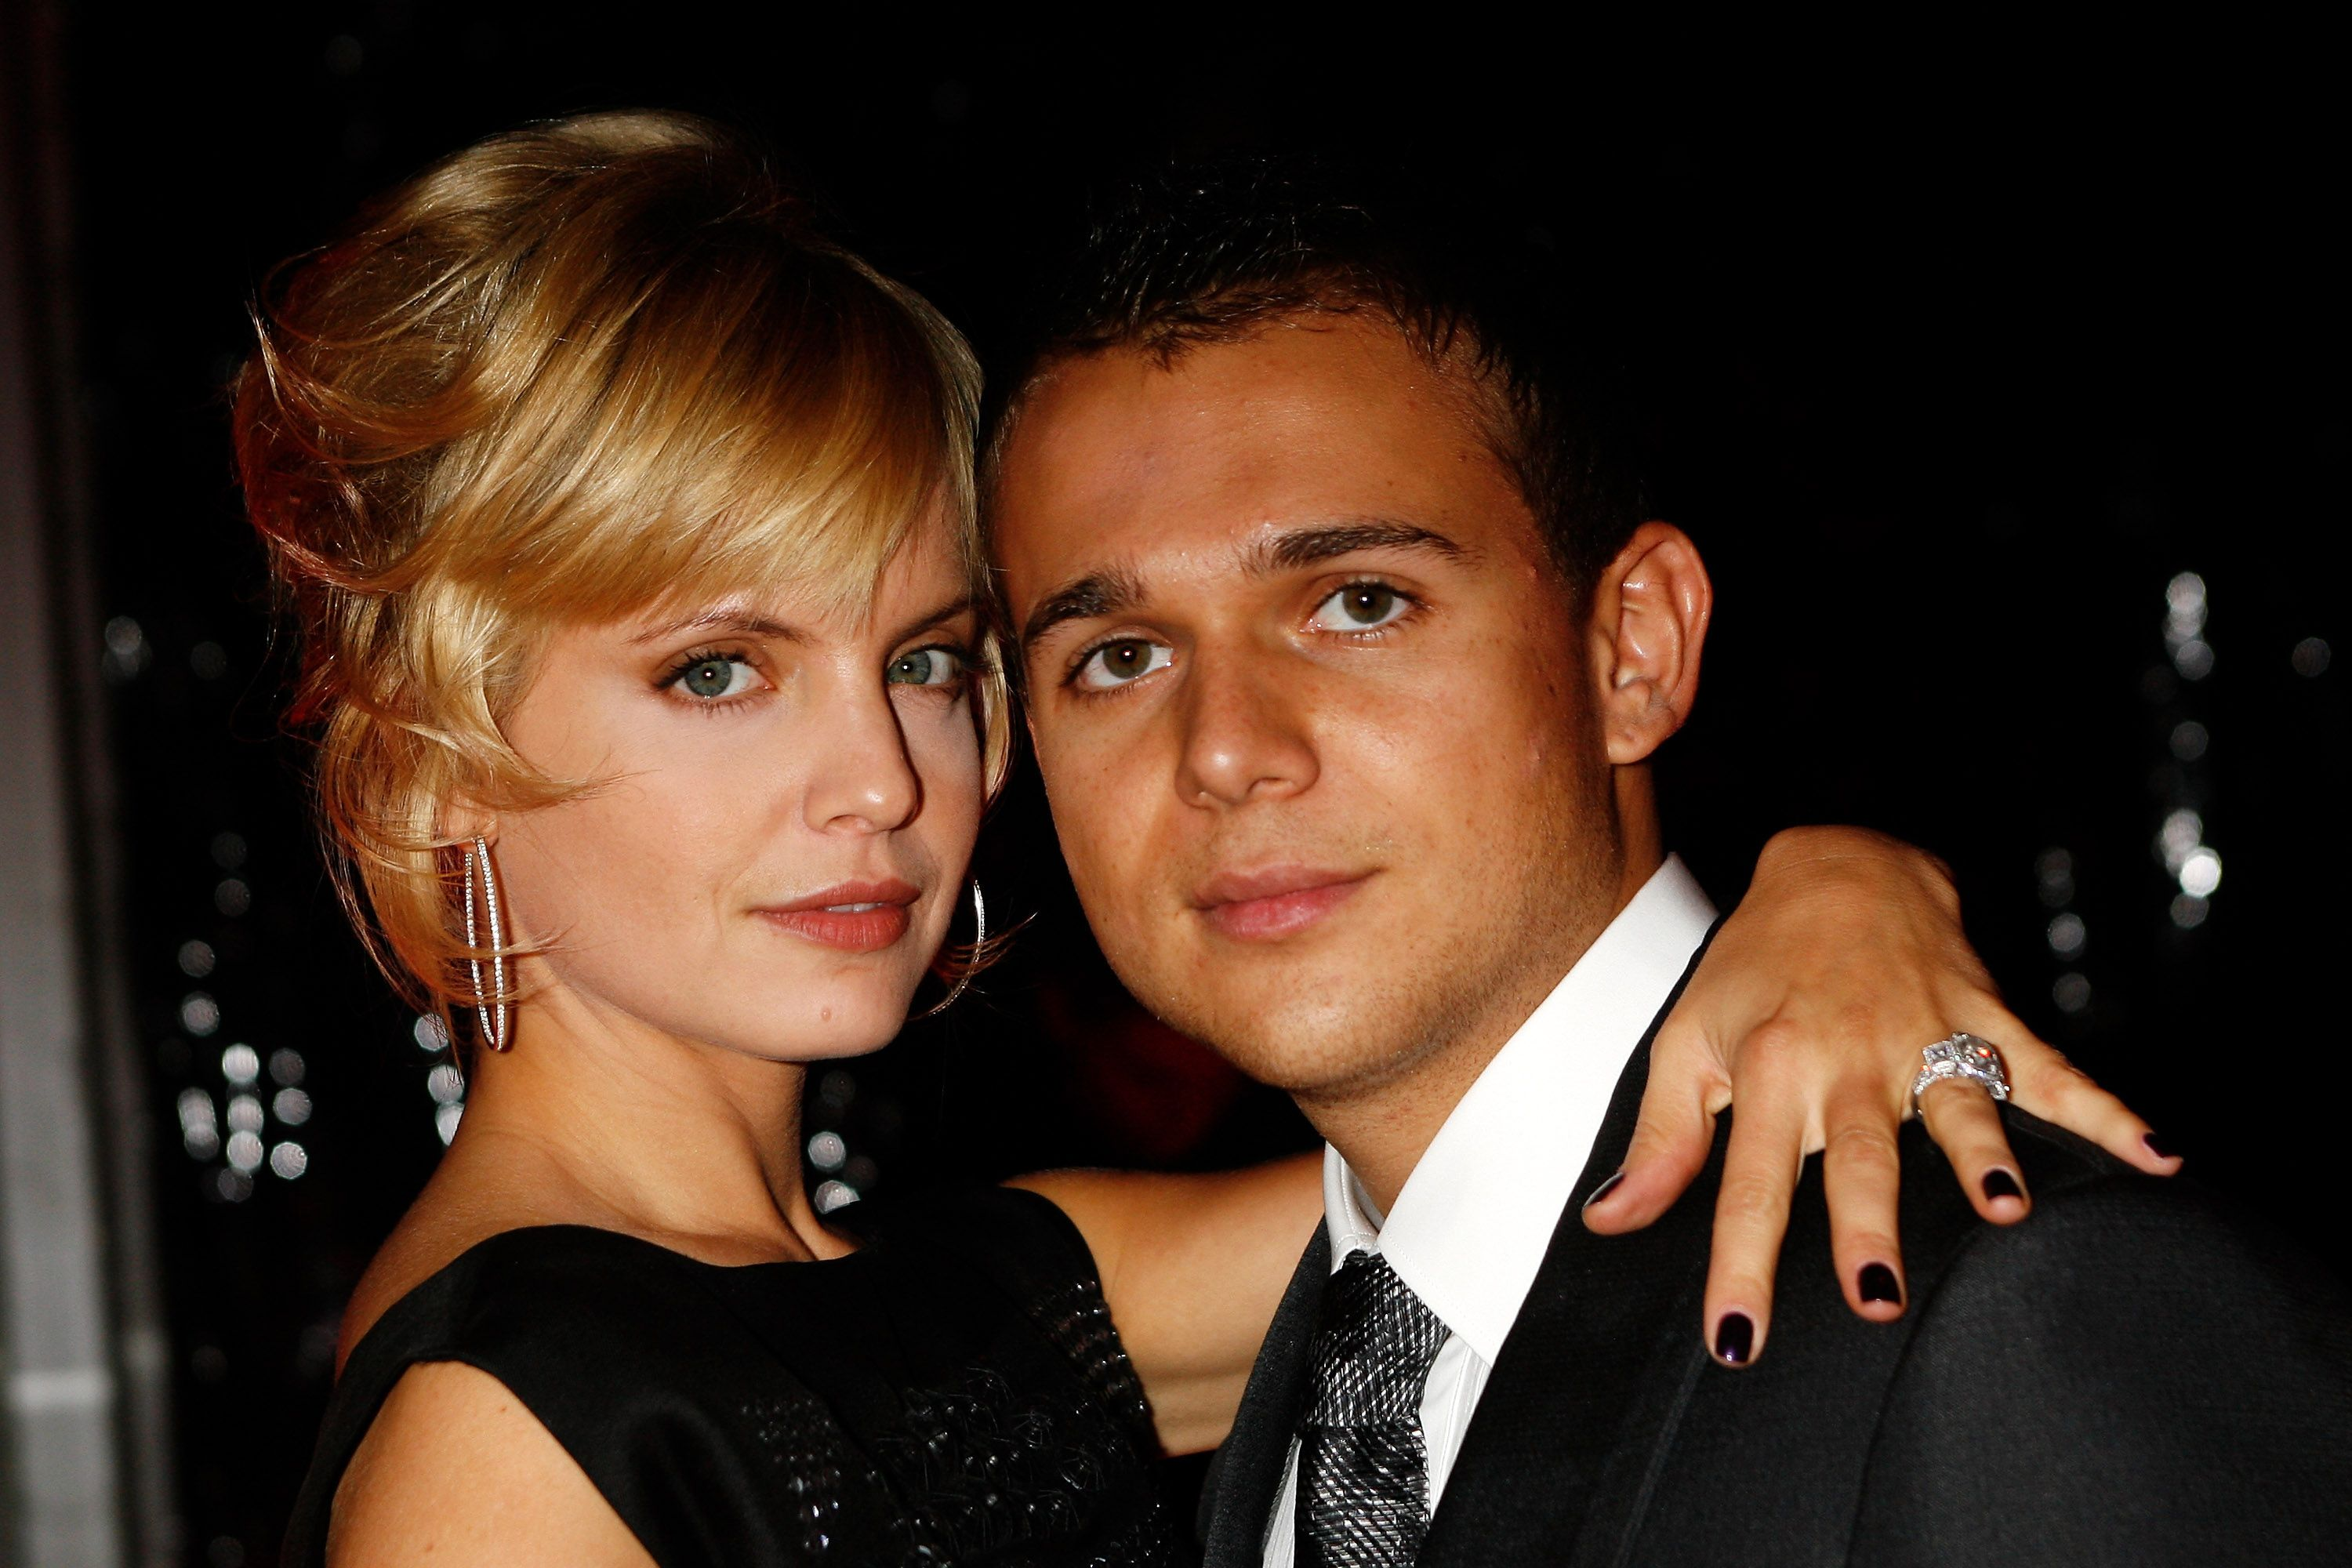 Mena Suvari used to be married to Simone Sestito / Getty Images